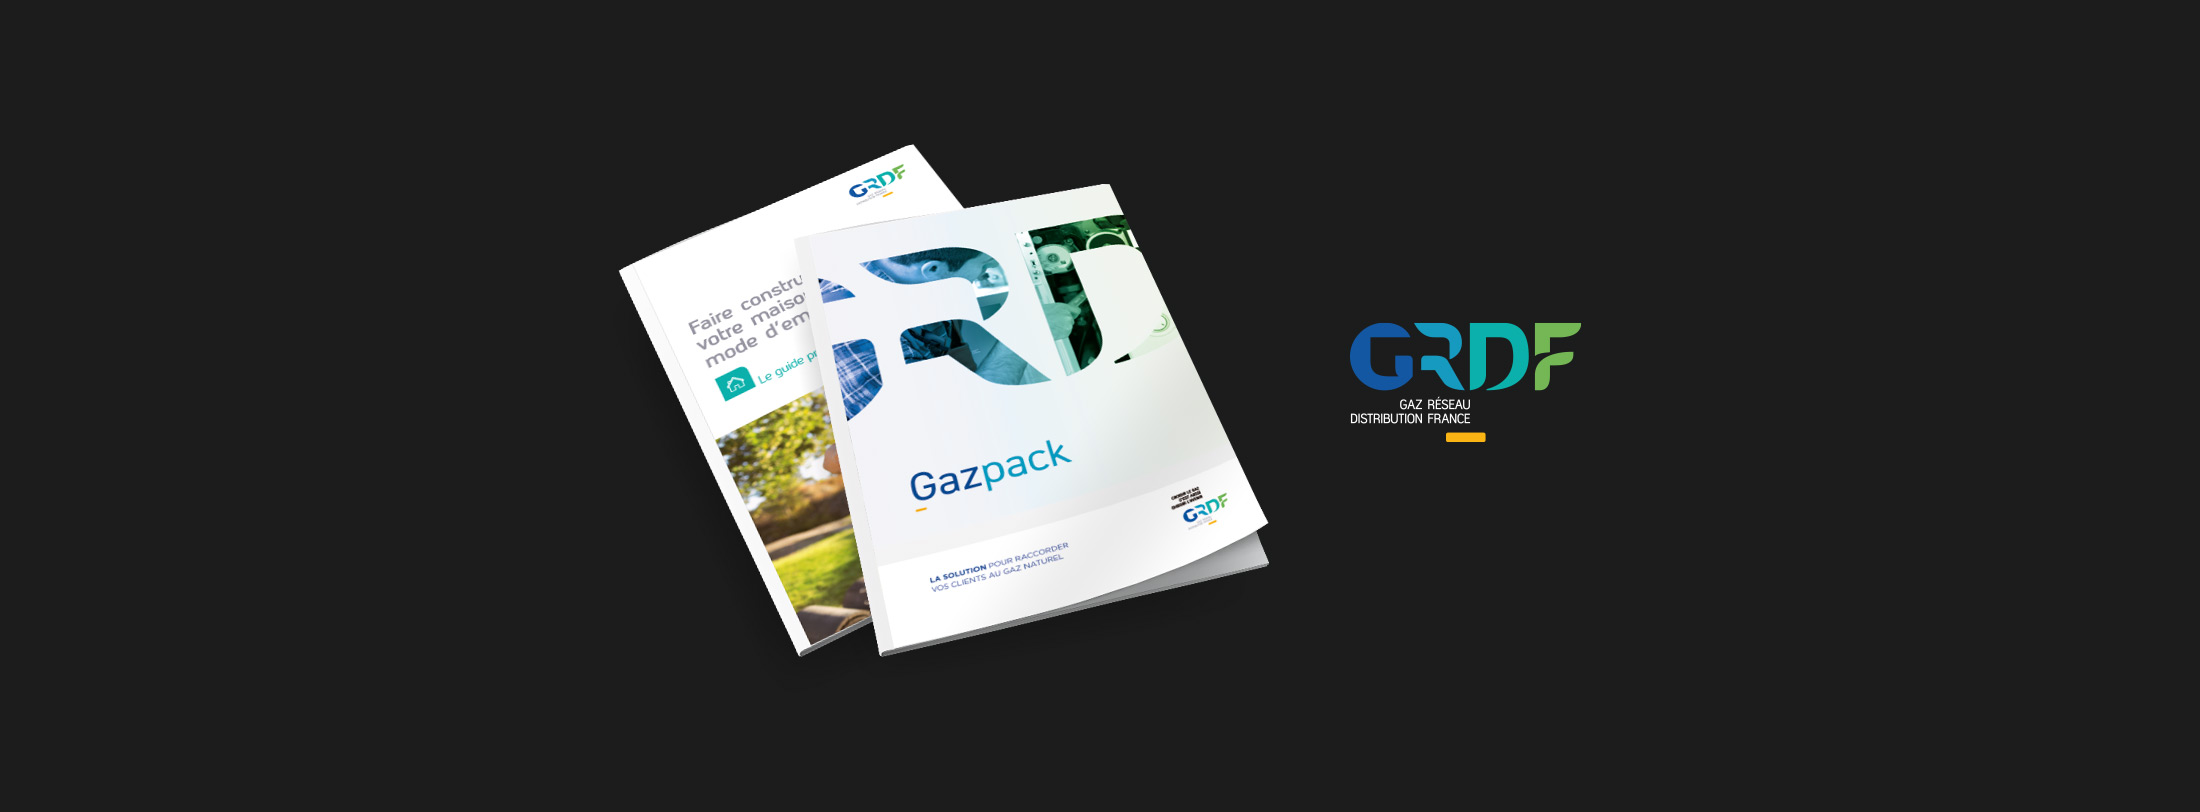 couv-grdf-visuel-creation-brochure-grdf-osb-communication-design